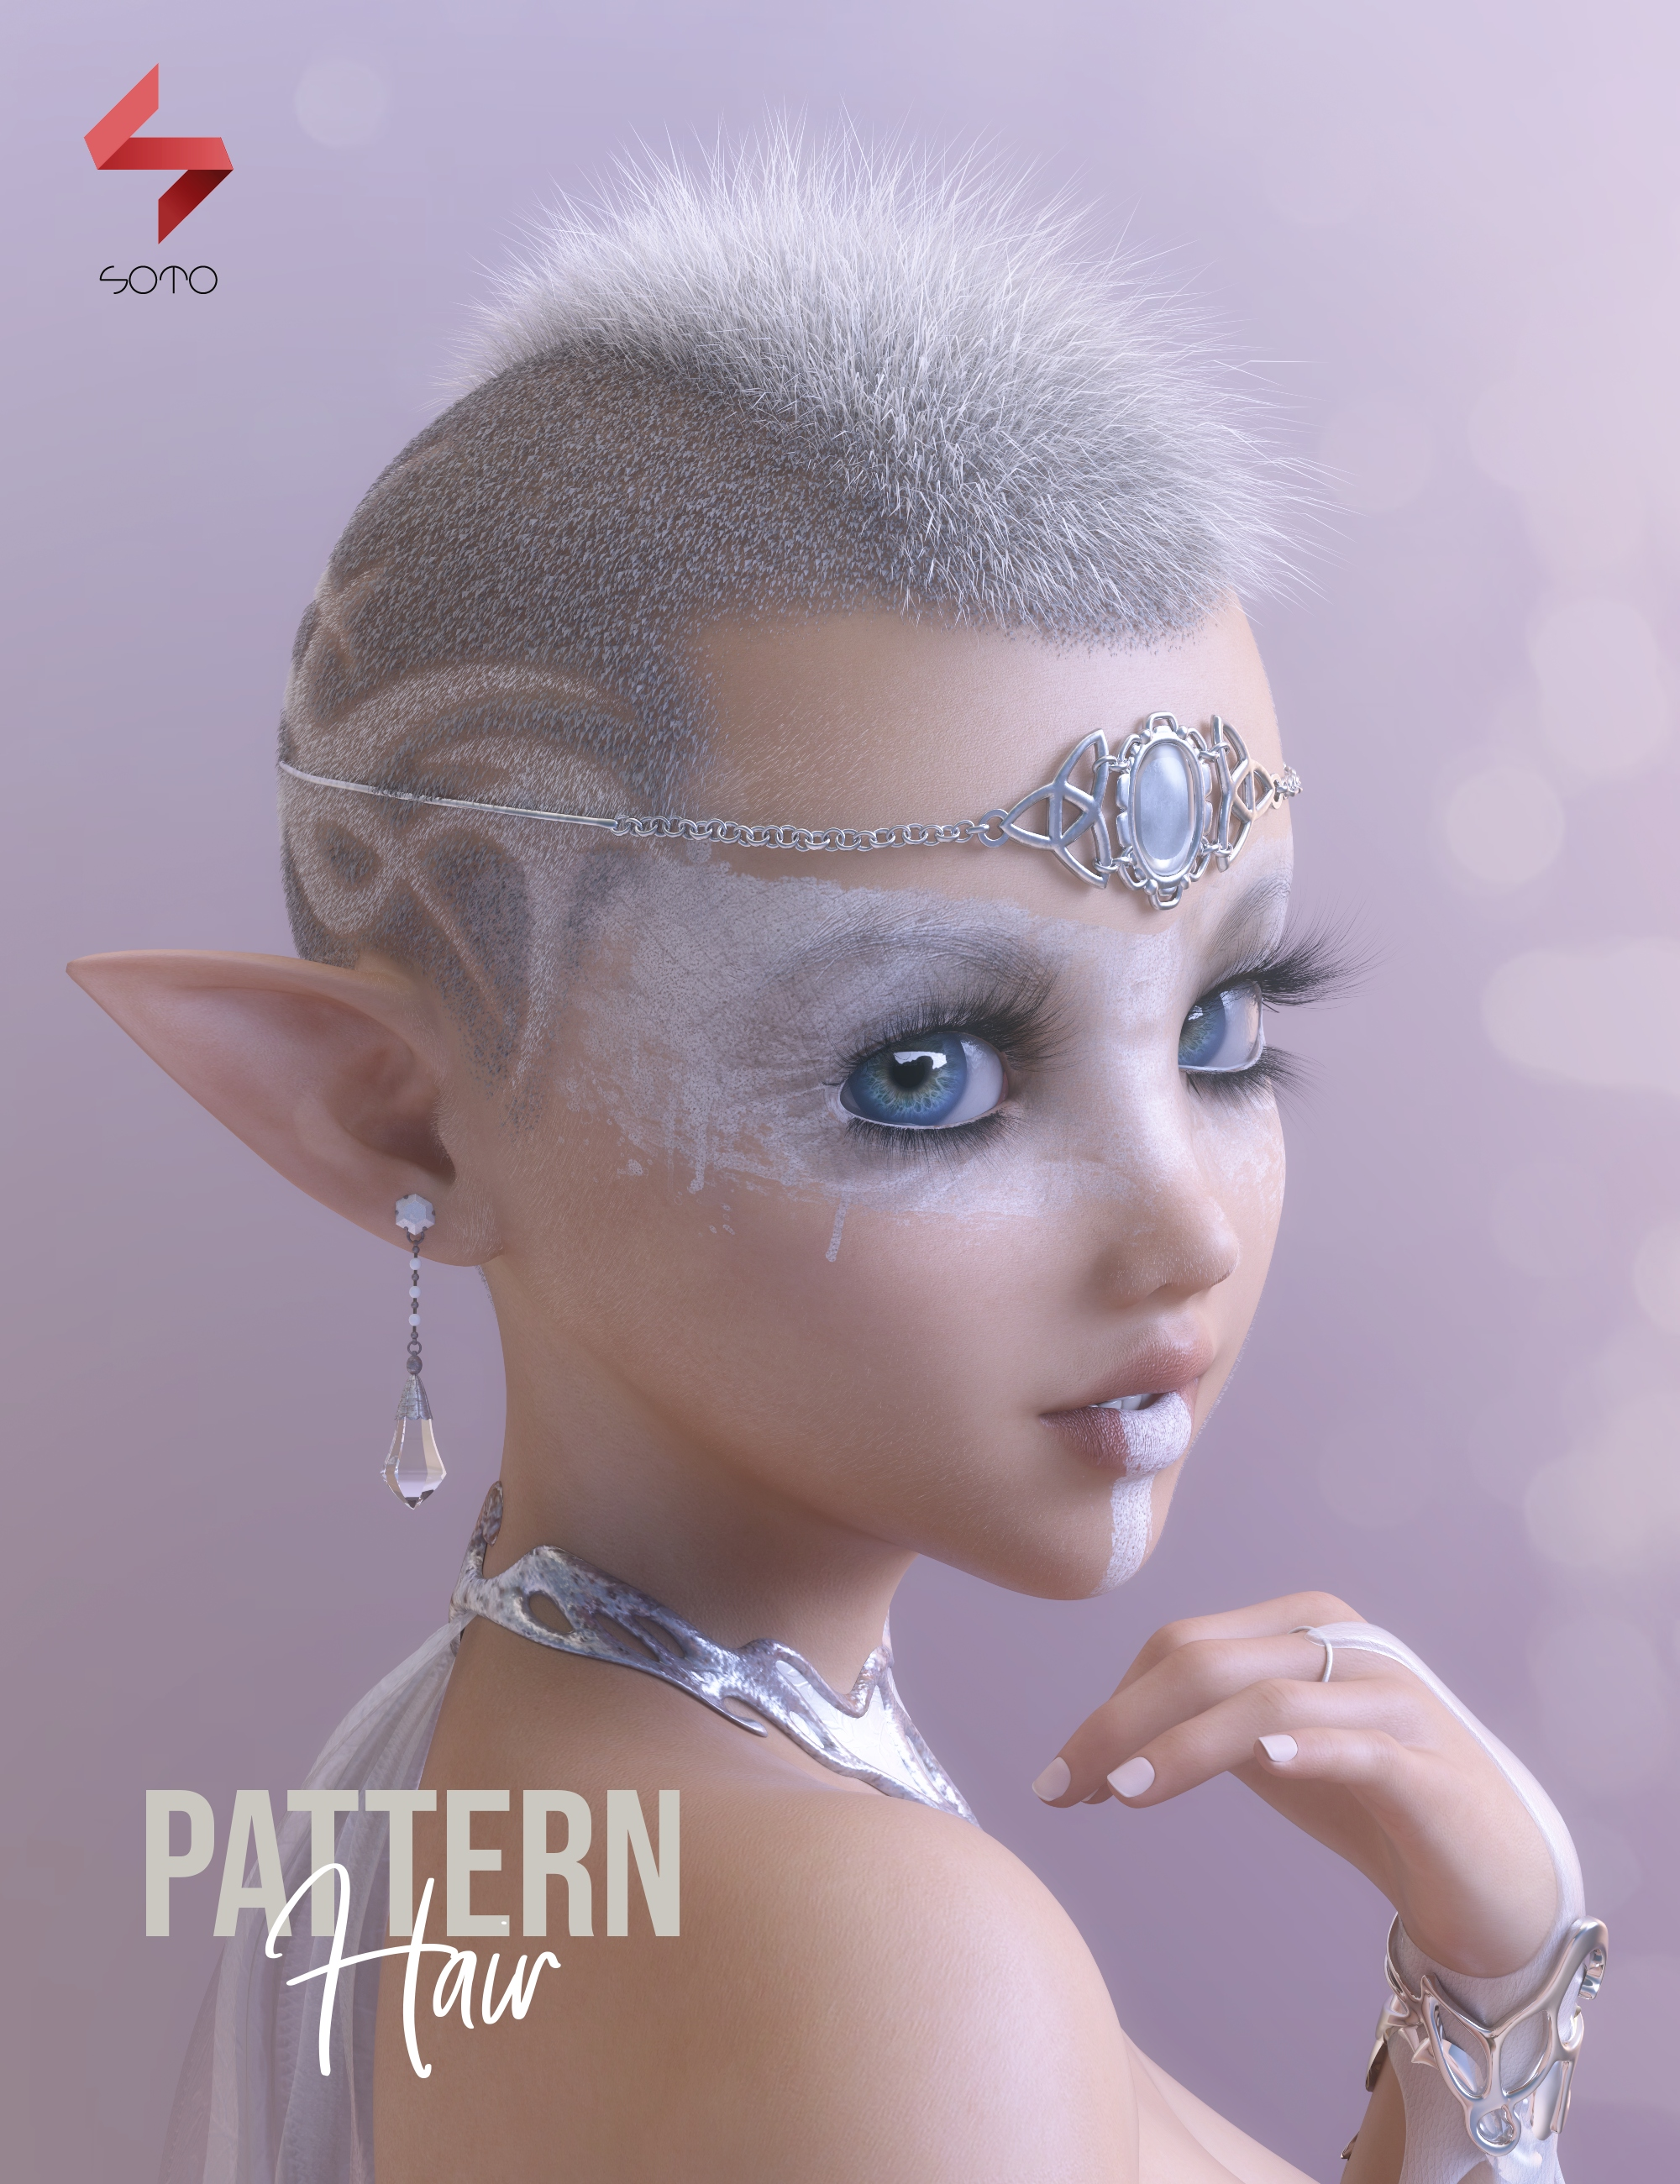 Pattern Hair for Genesis 3 and 8 by: Soto, 3D Models by Daz 3D